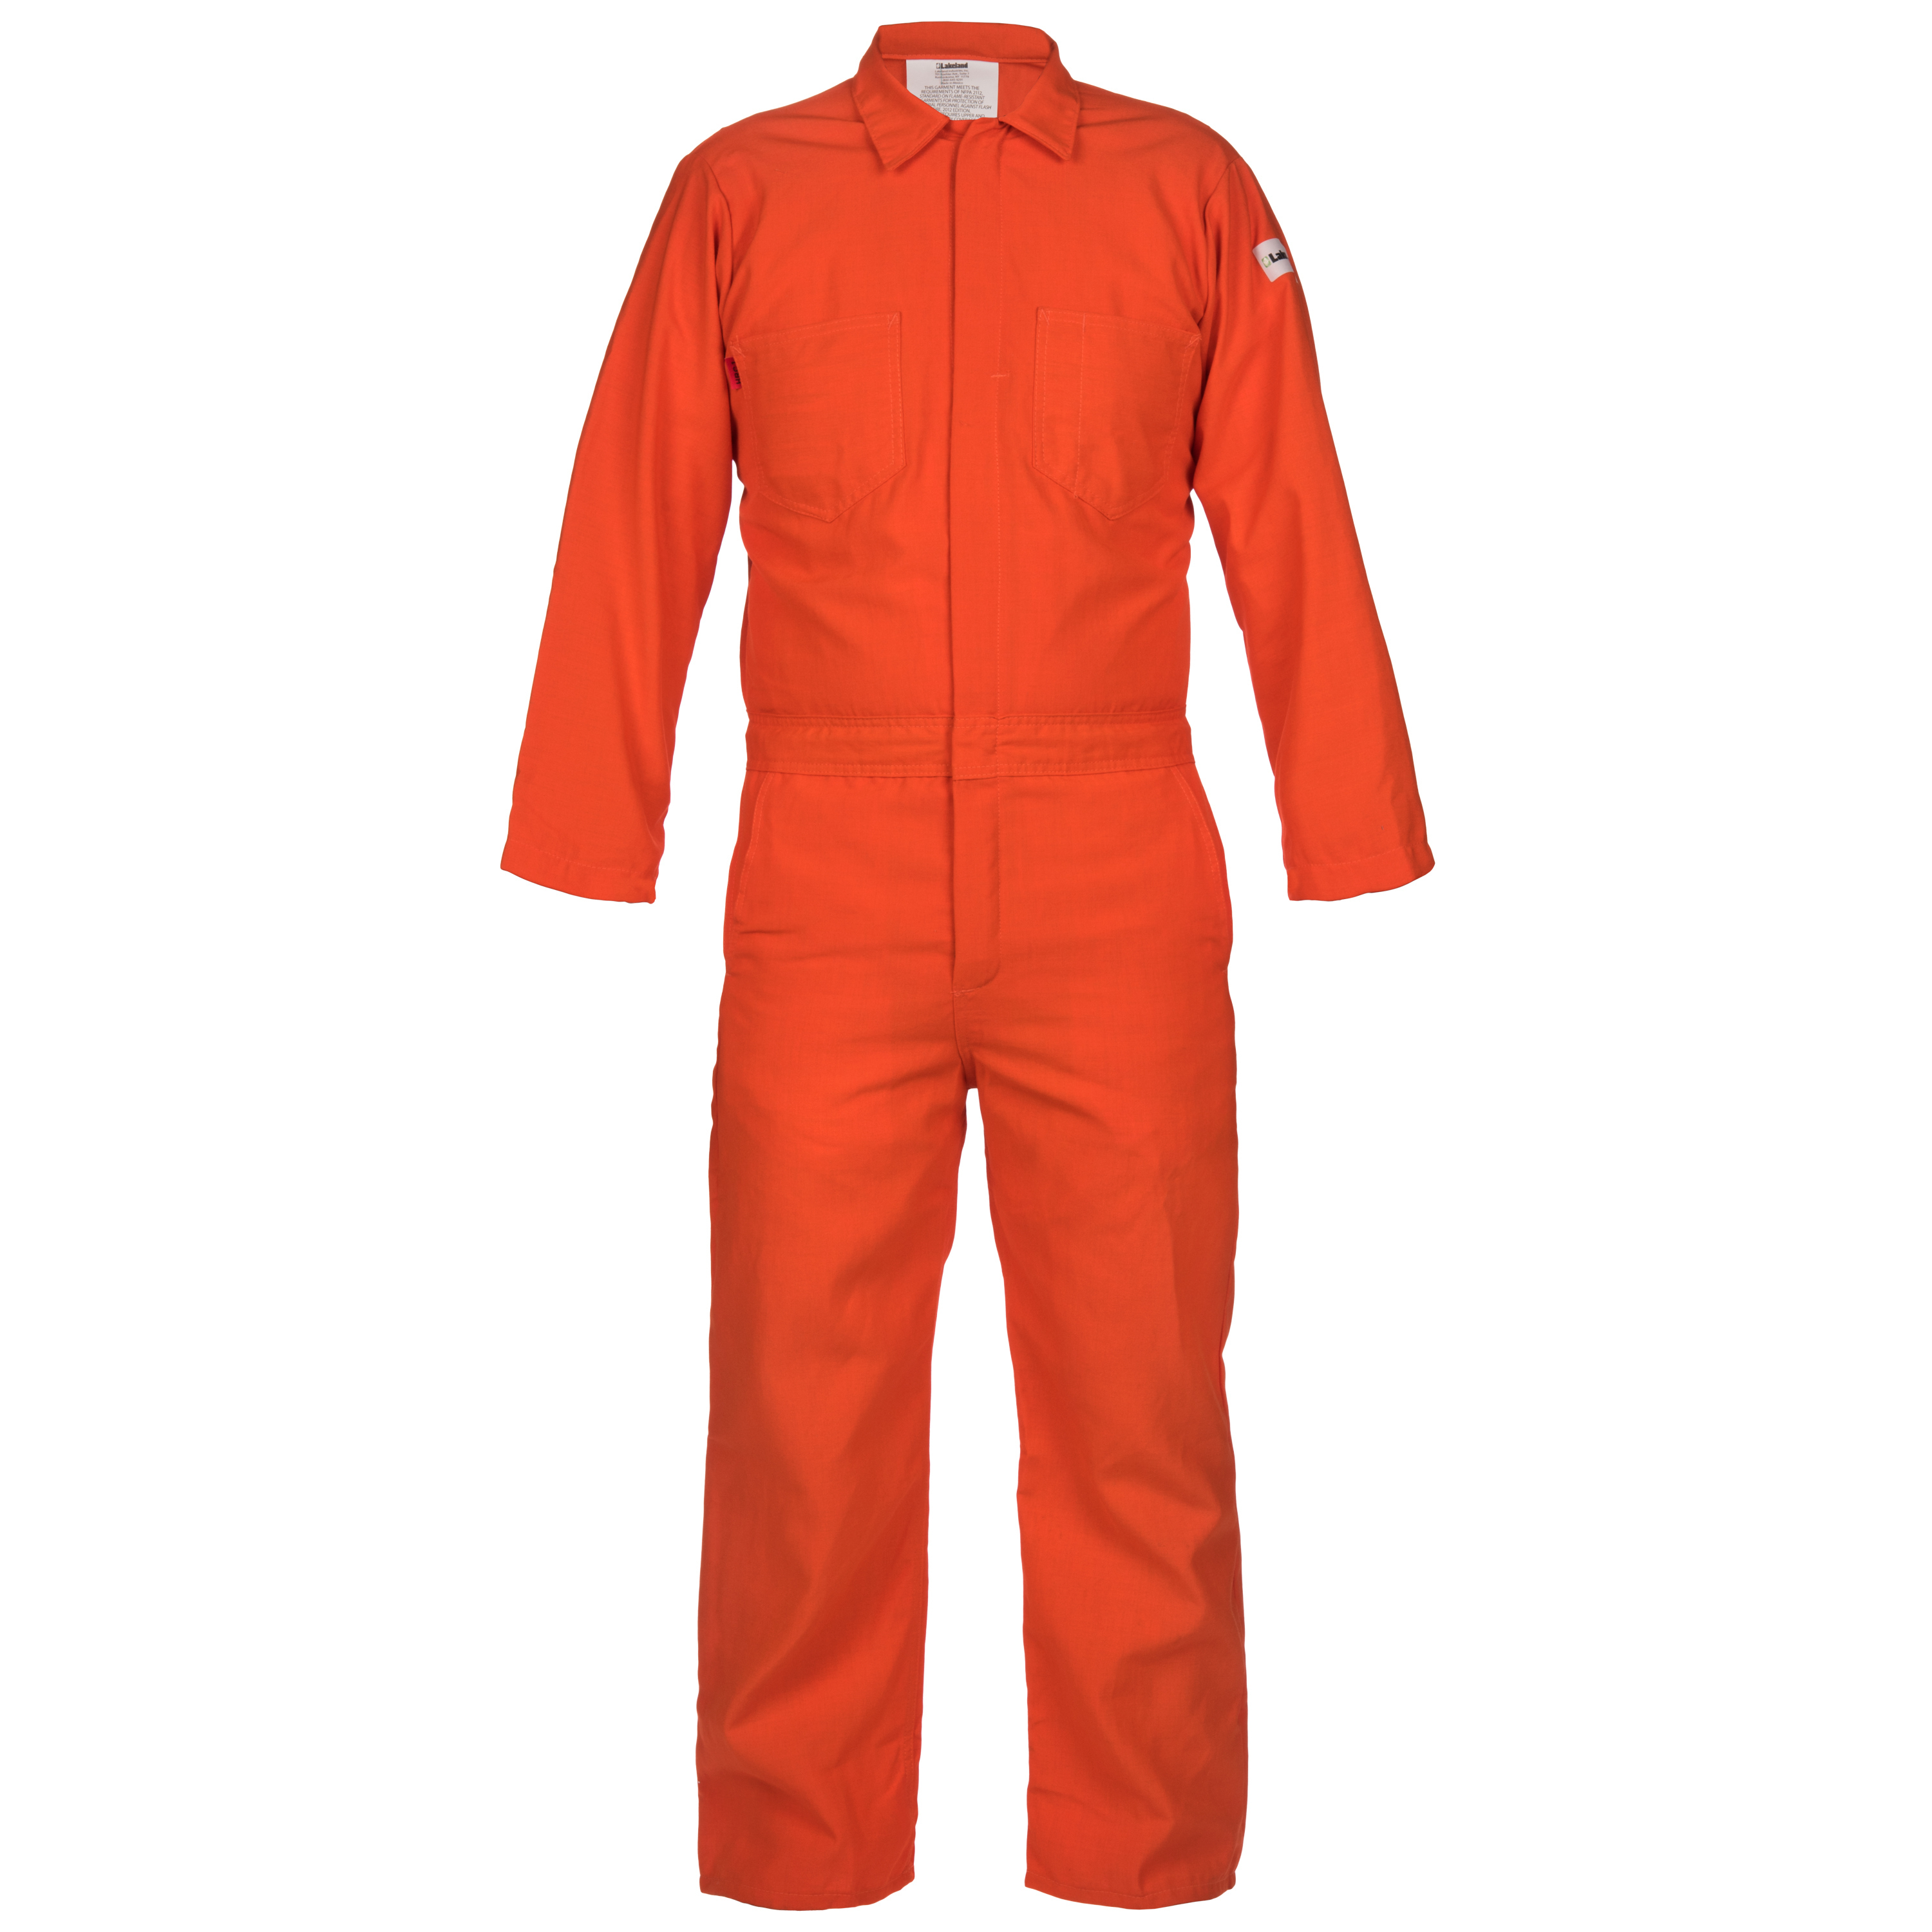 698d41fc8199 ... Catalog  FR Protective Clothing · Data Sheet  Nomex III Coveralls ...